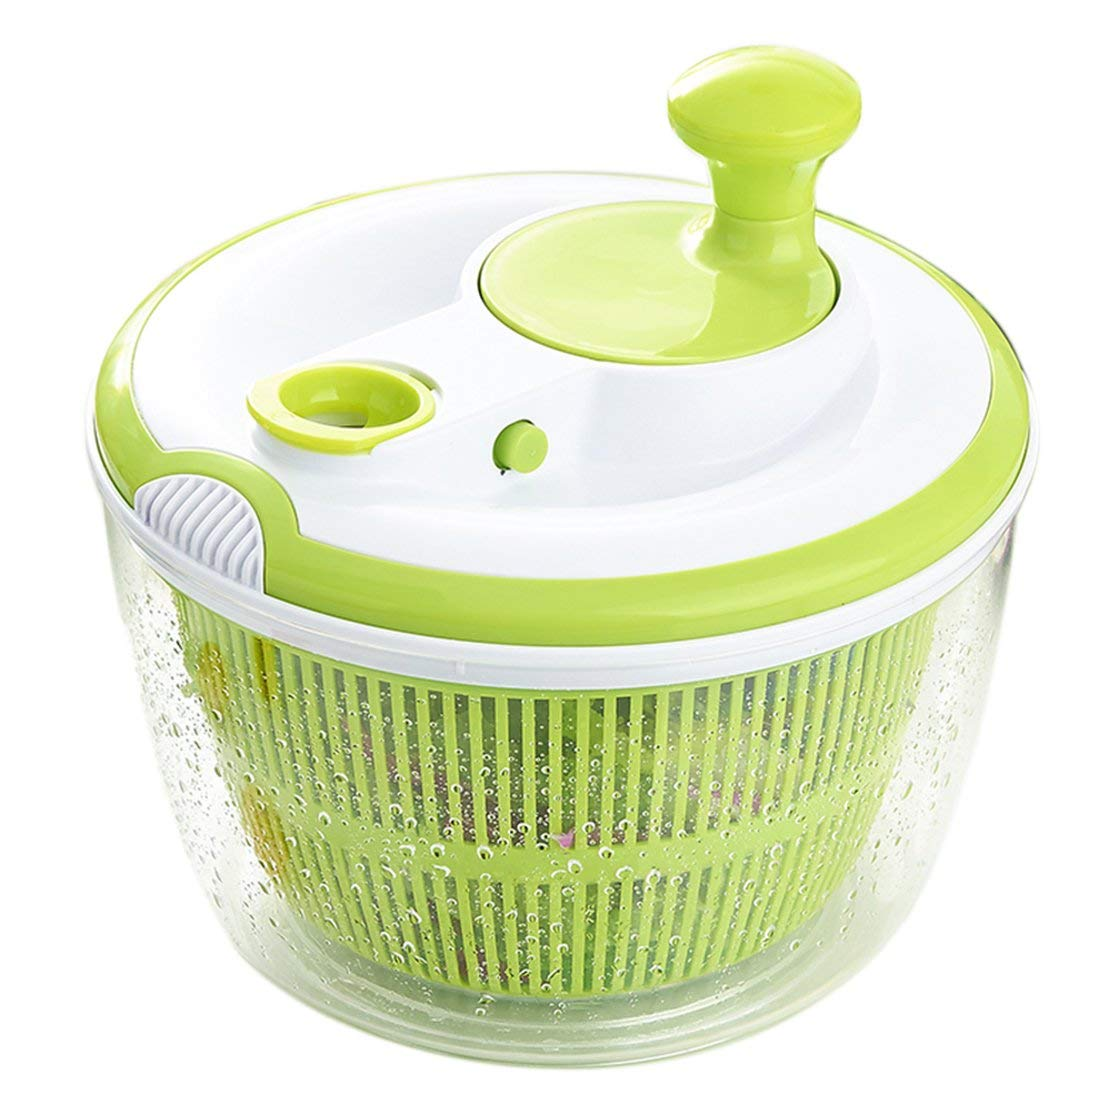 Tebery 5L Healthy Eating Large Salad Spinner and Dresser, Green and White, Dia 25 cm